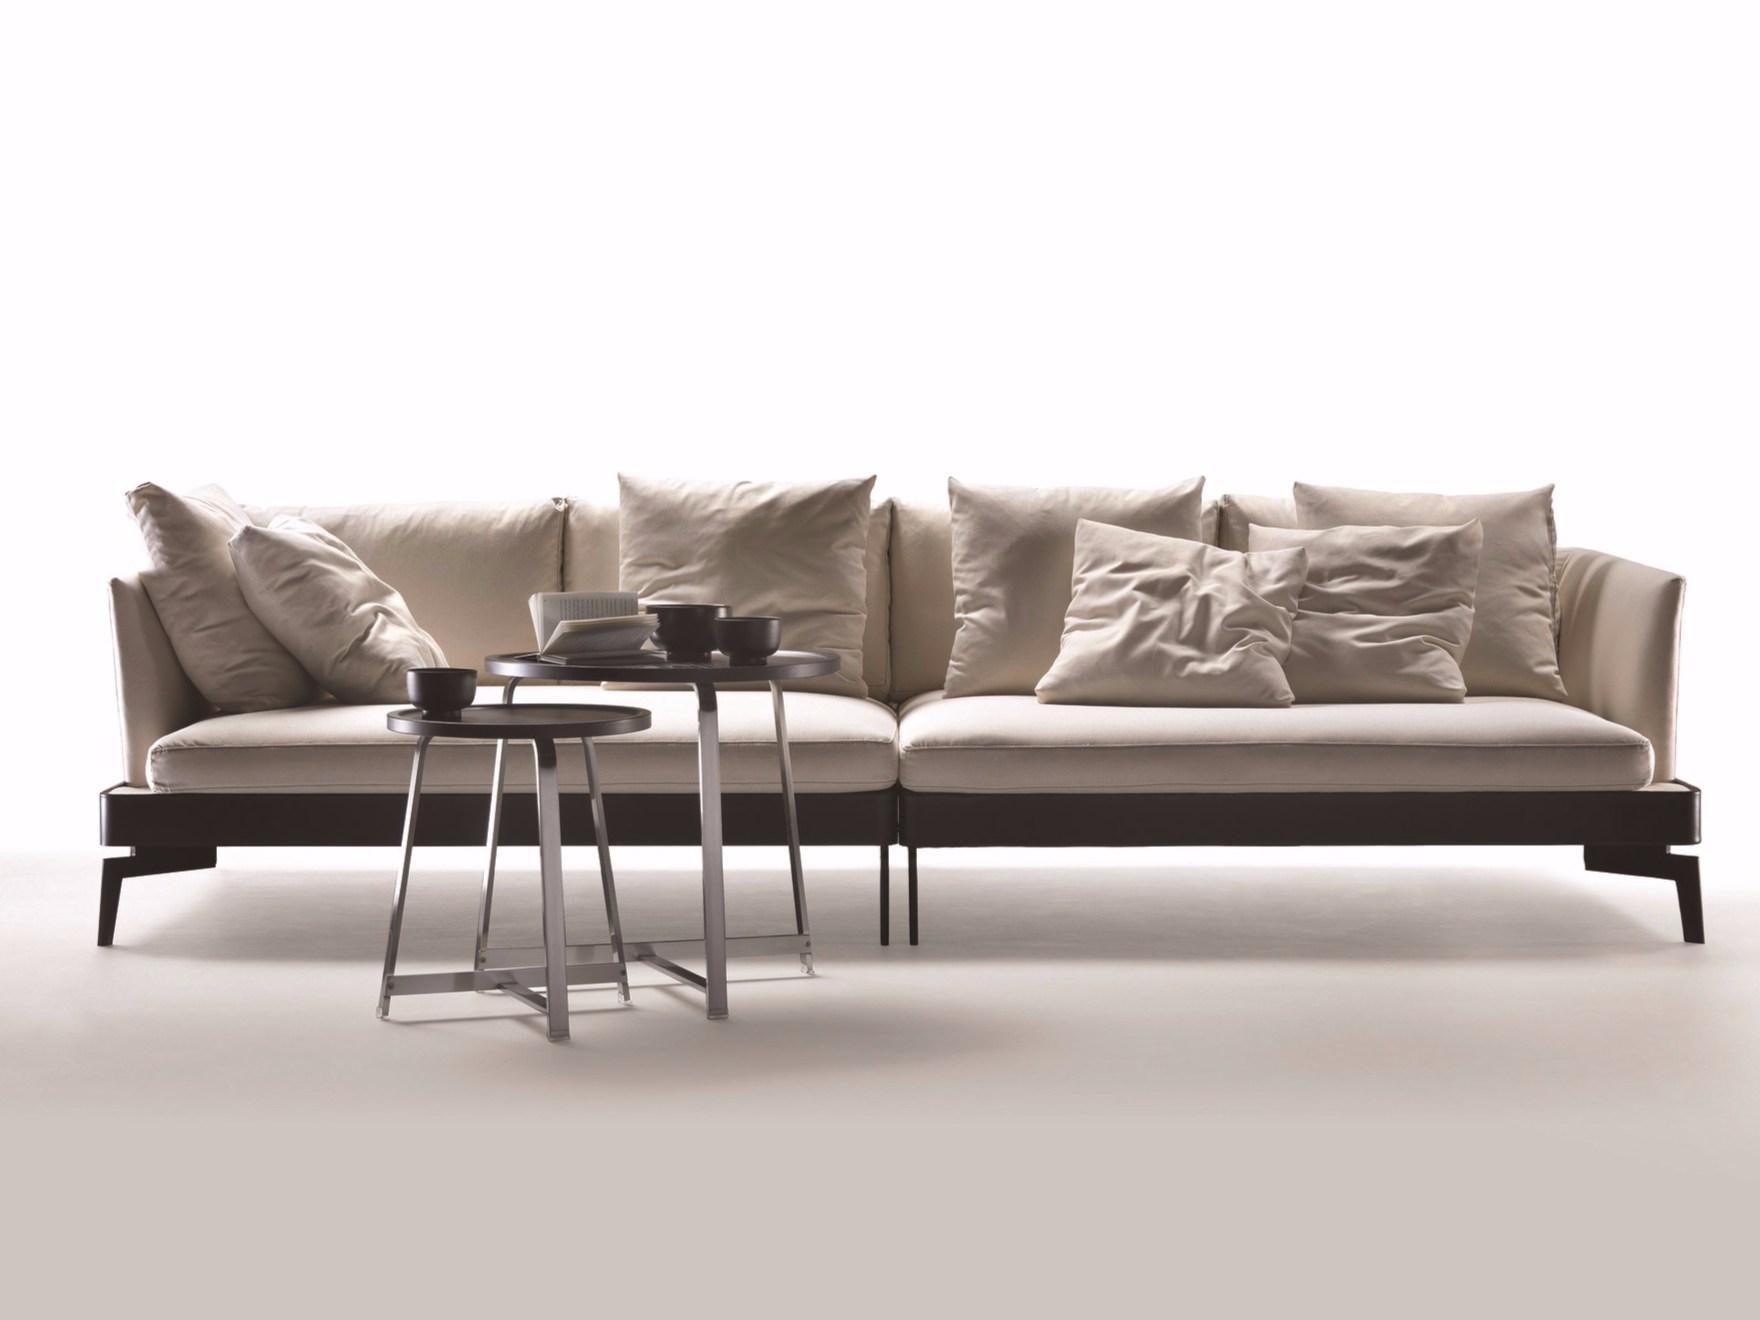 Flexform Sofas And Armchairs | Archiproducts Pertaining To Flexform Sofas (View 16 of 20)